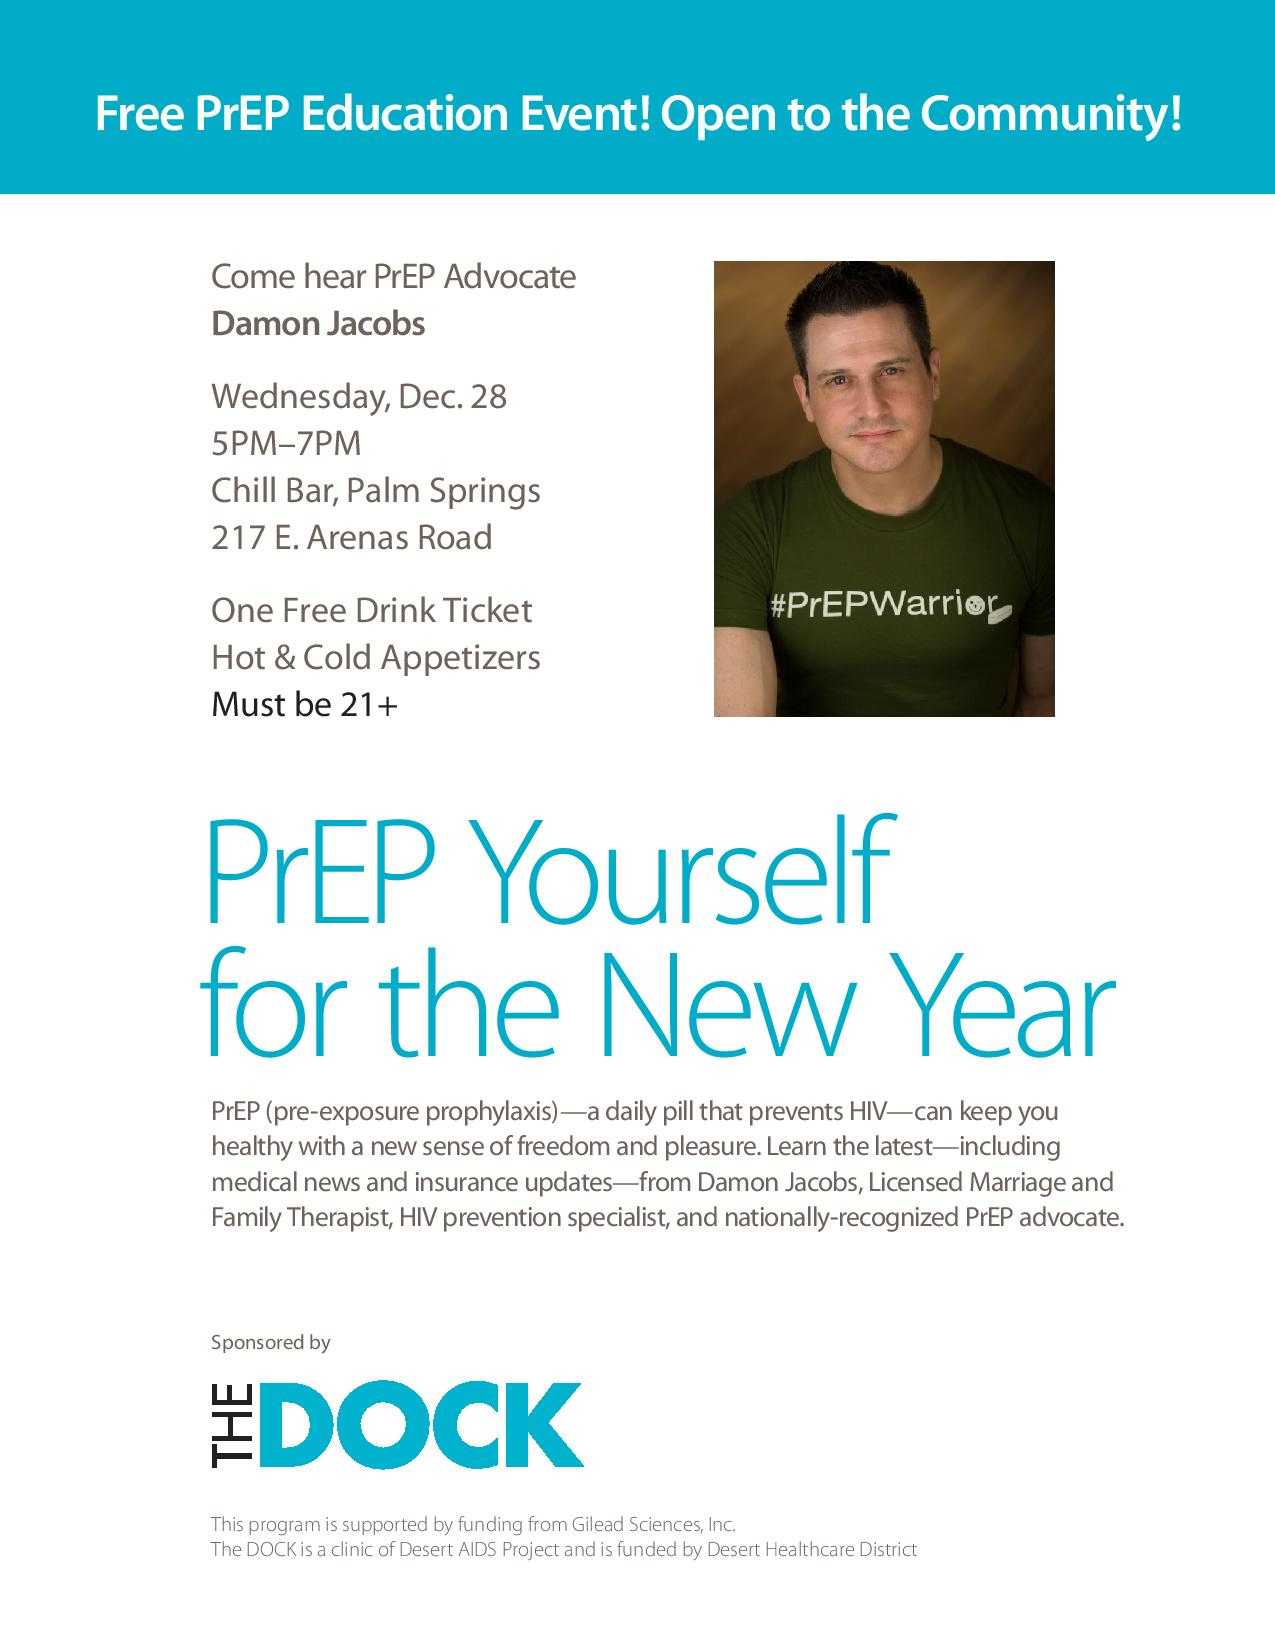 the-dock-prep-event-8-5x11-flyer-2016_rev2-page-001